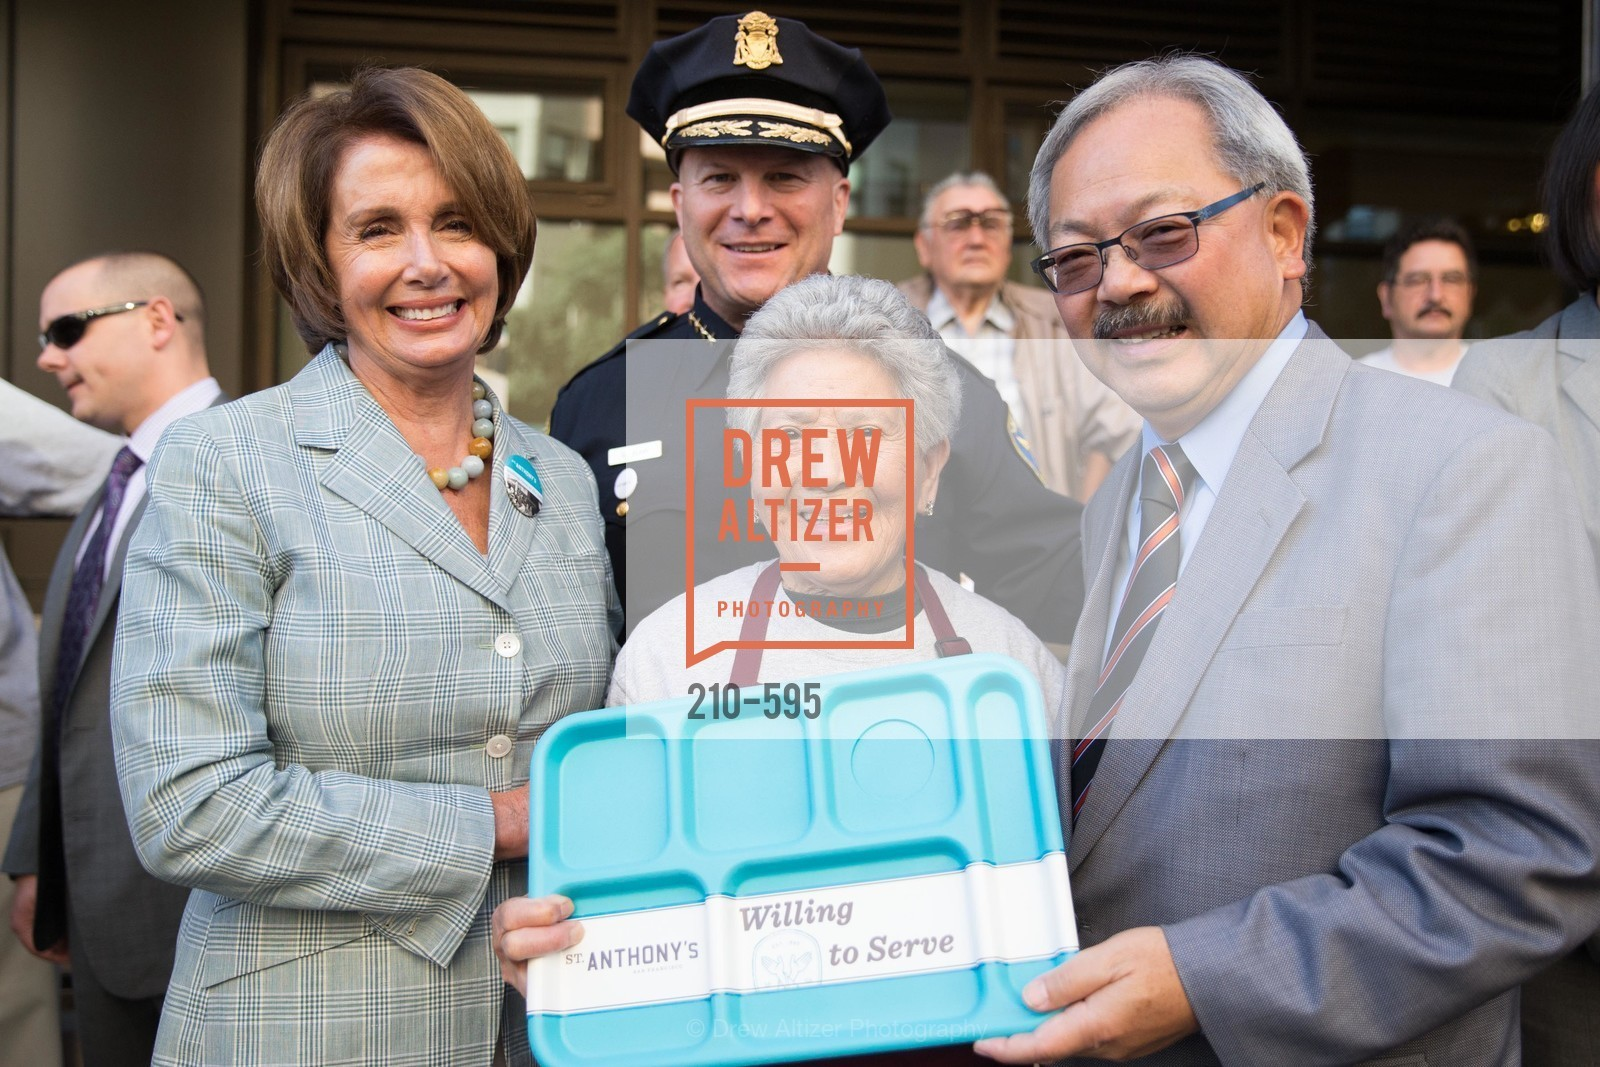 The Honorable Nancy Pelosi, Greg Suhr, Carmelita Lozano, Mayor Ed Lee, ST. ANTHONY'S Dining Room Ribbon Cutting Ceremony, US, October 4th, 2014,Drew Altizer, Drew Altizer Photography, full-service agency, private events, San Francisco photographer, photographer california